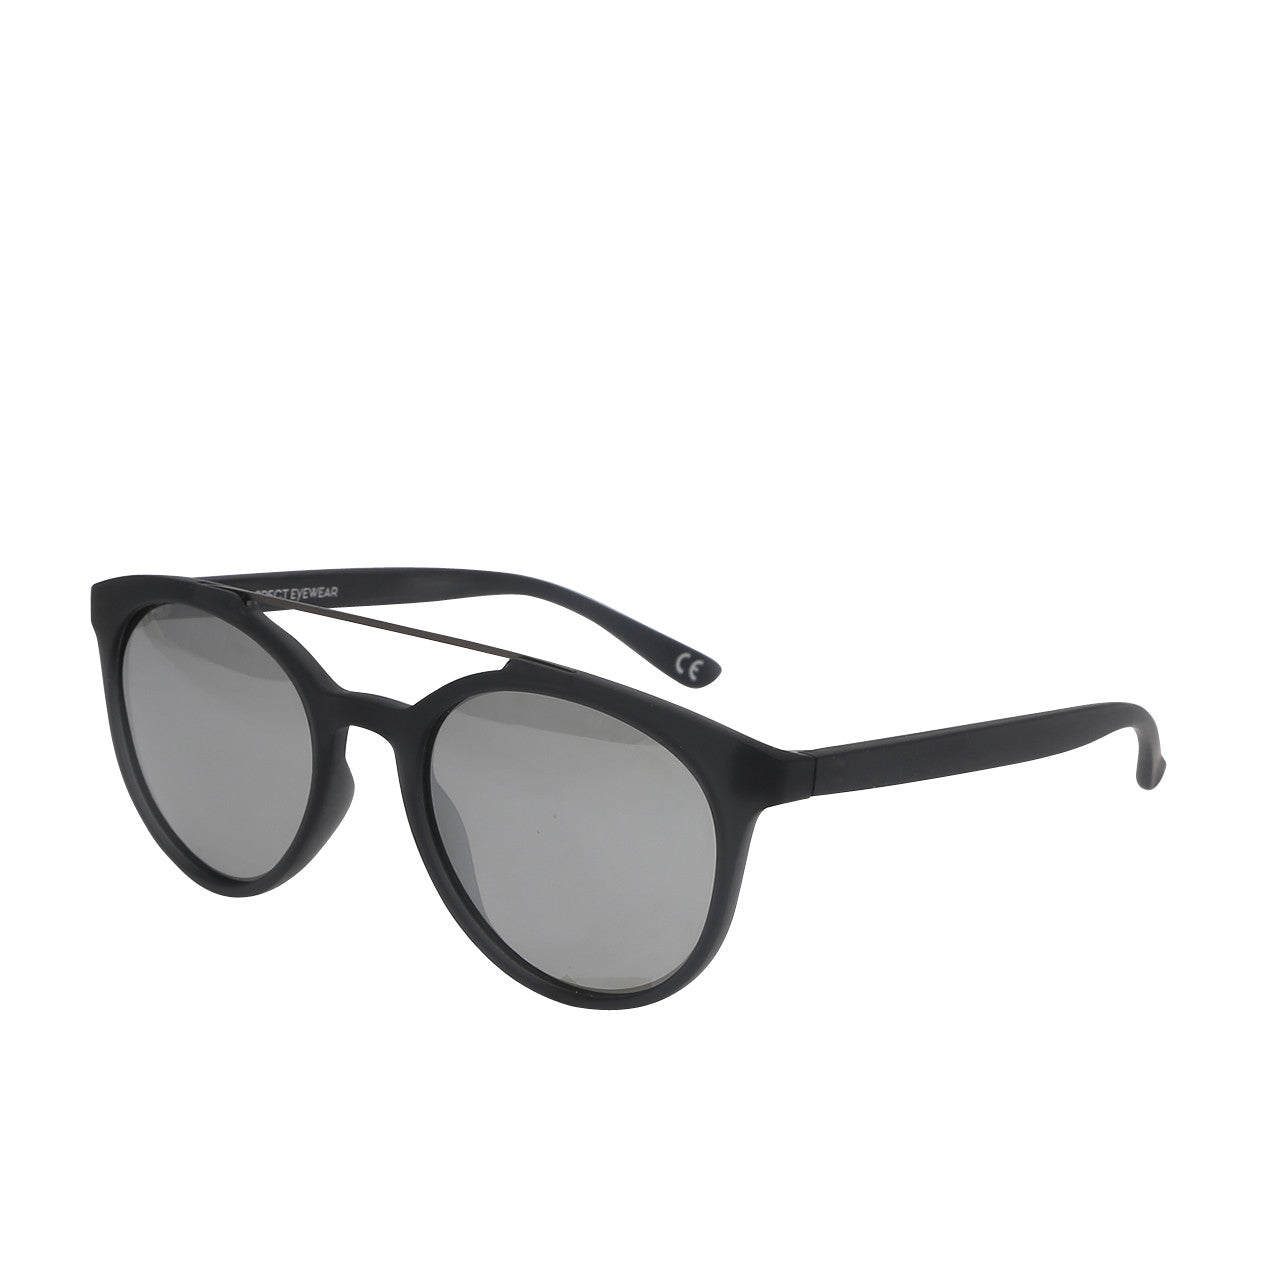 Aspect Eyewear Ocean TR134 Polarised Mirrored Sunglasses